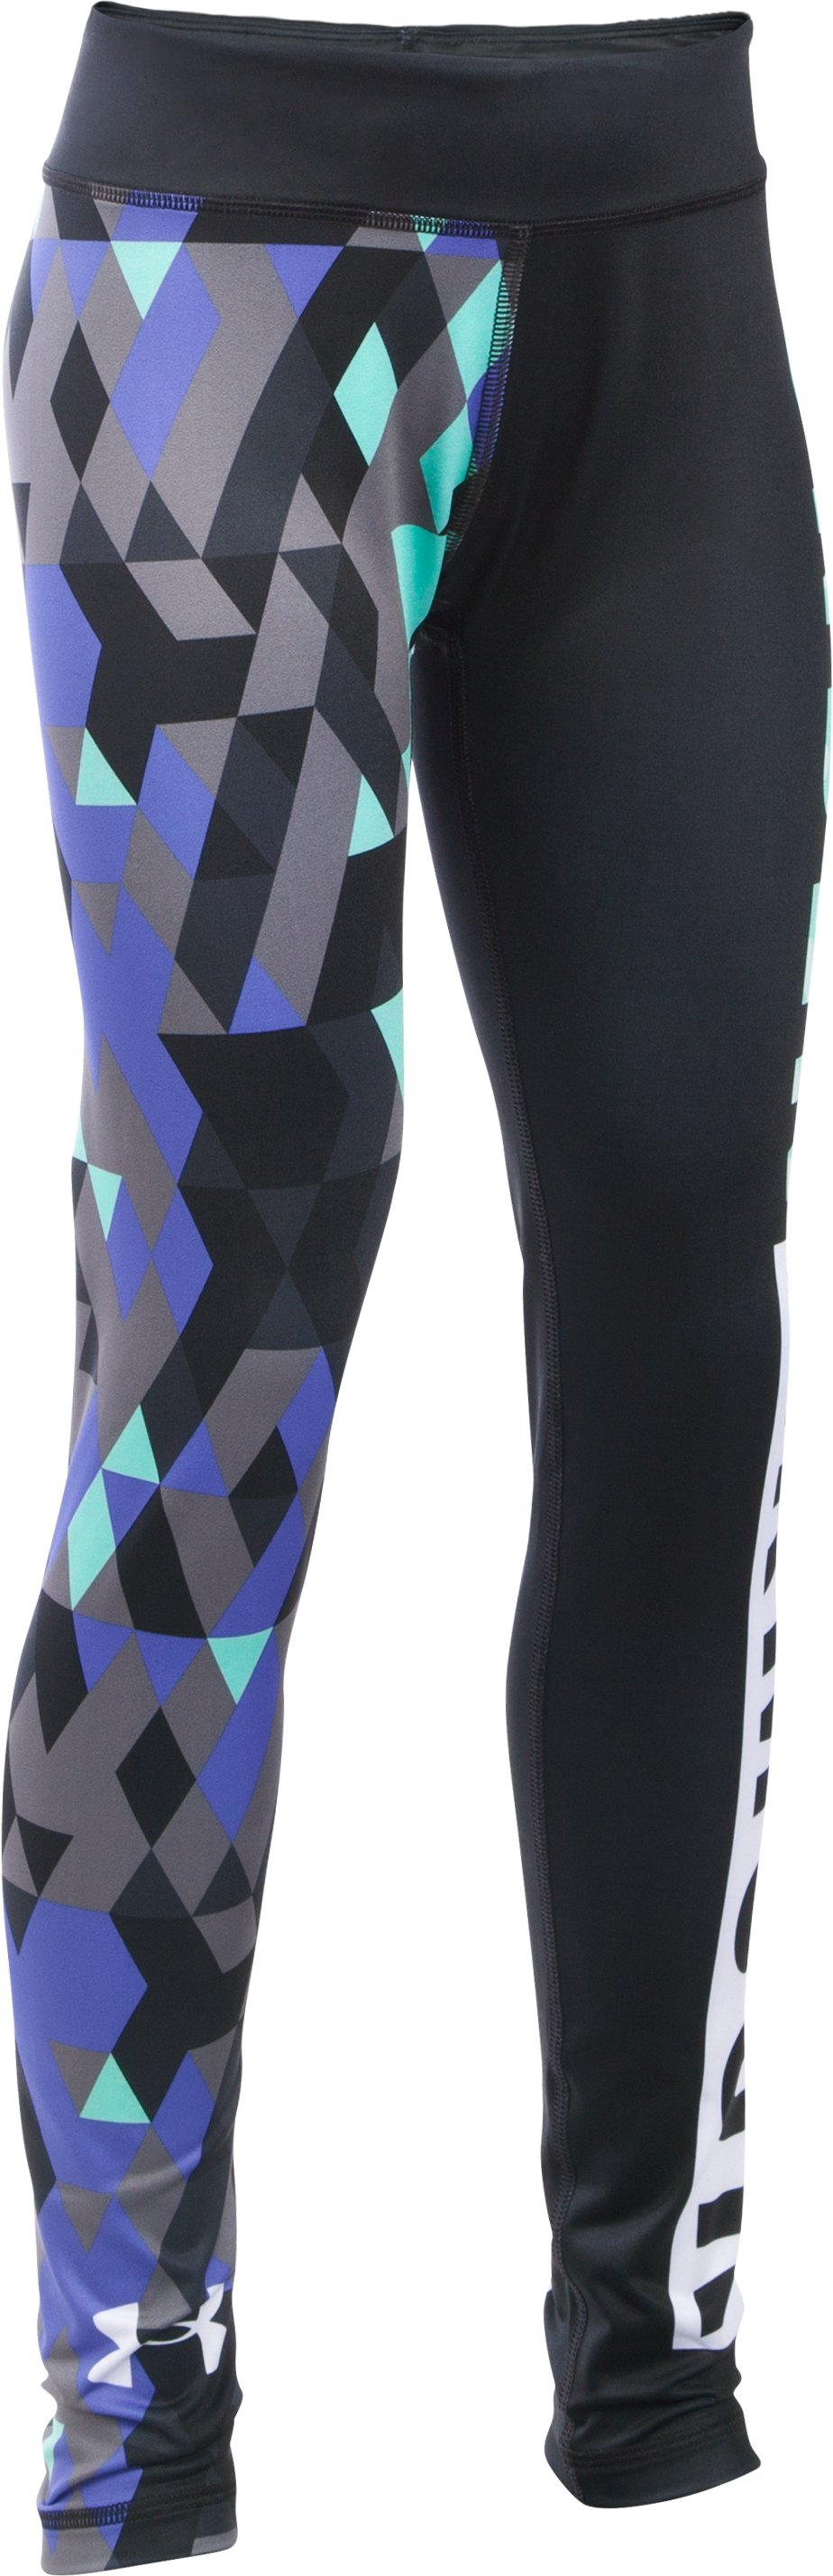 Girls' UA Mix Master Tri Meta Leggings, Black